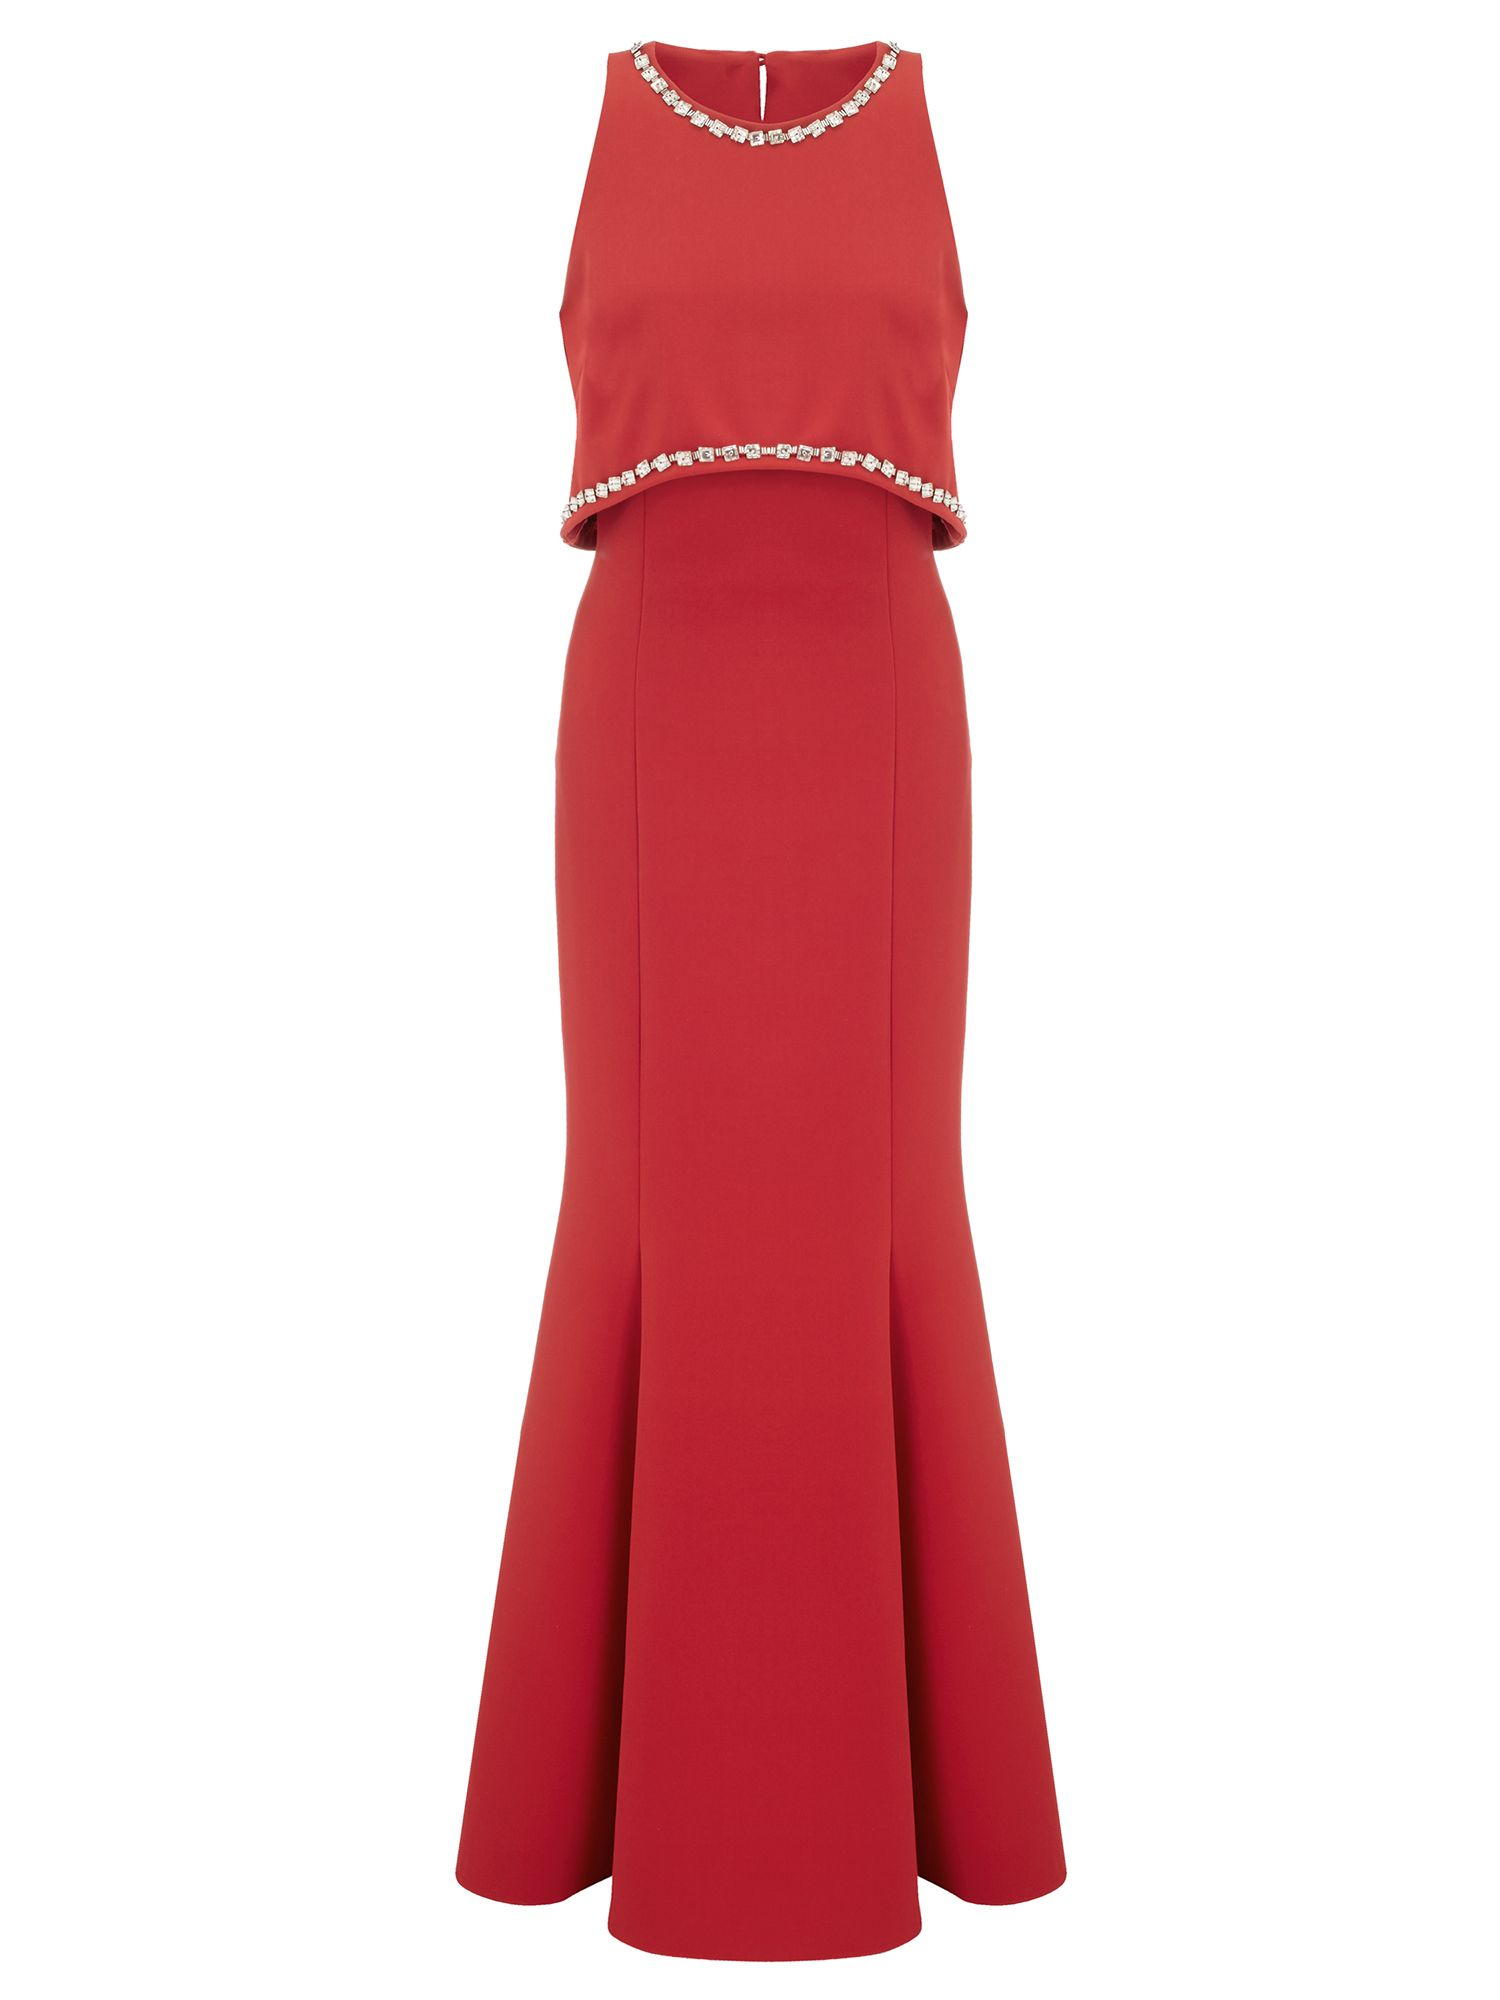 Ariella Naya Crop Top Design Beaded Dress, Red